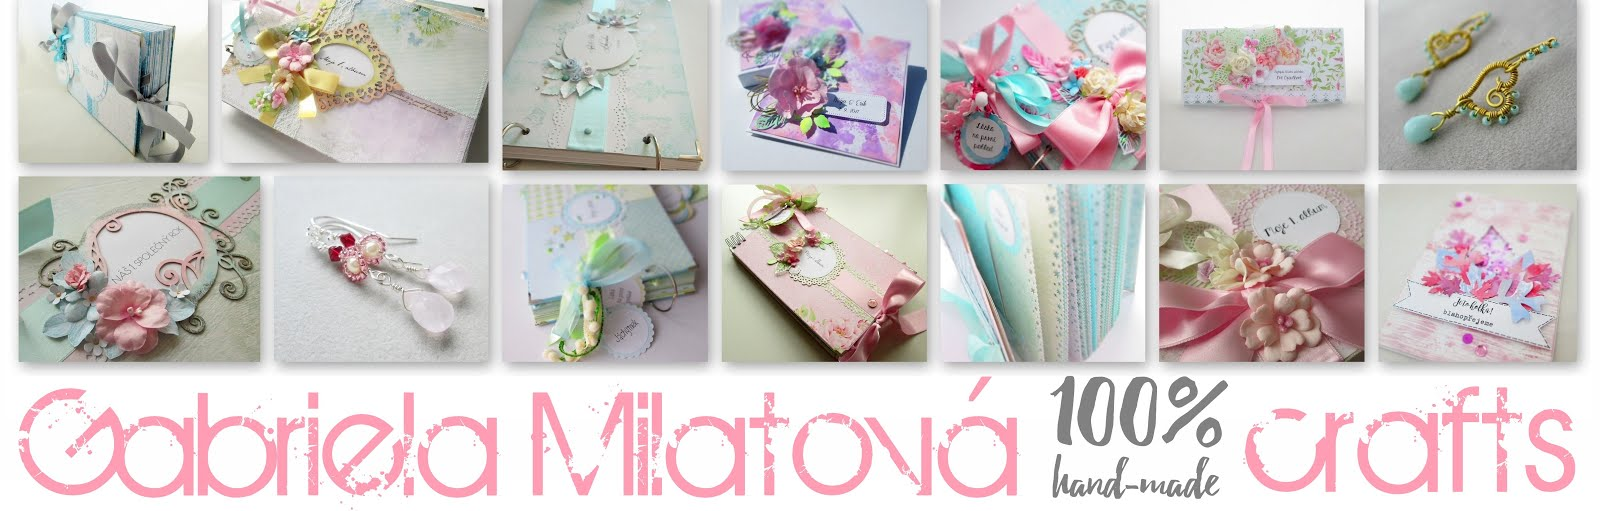 Gabriela Milatova Crafts